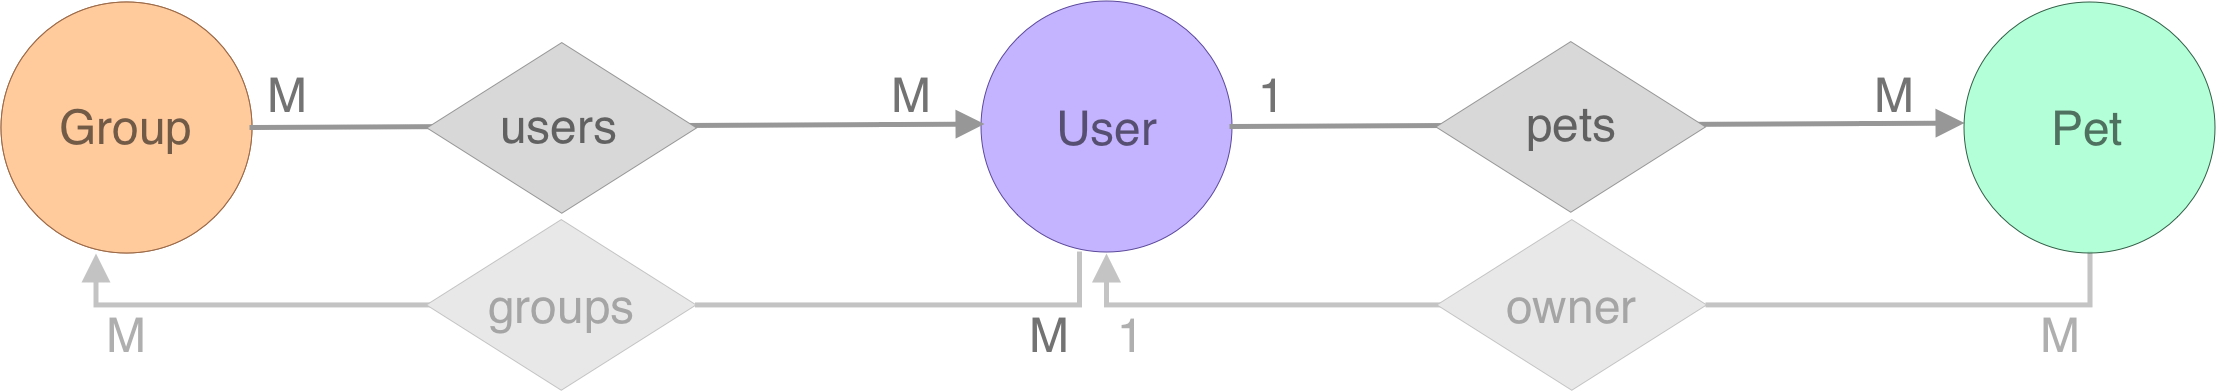 er-group-users